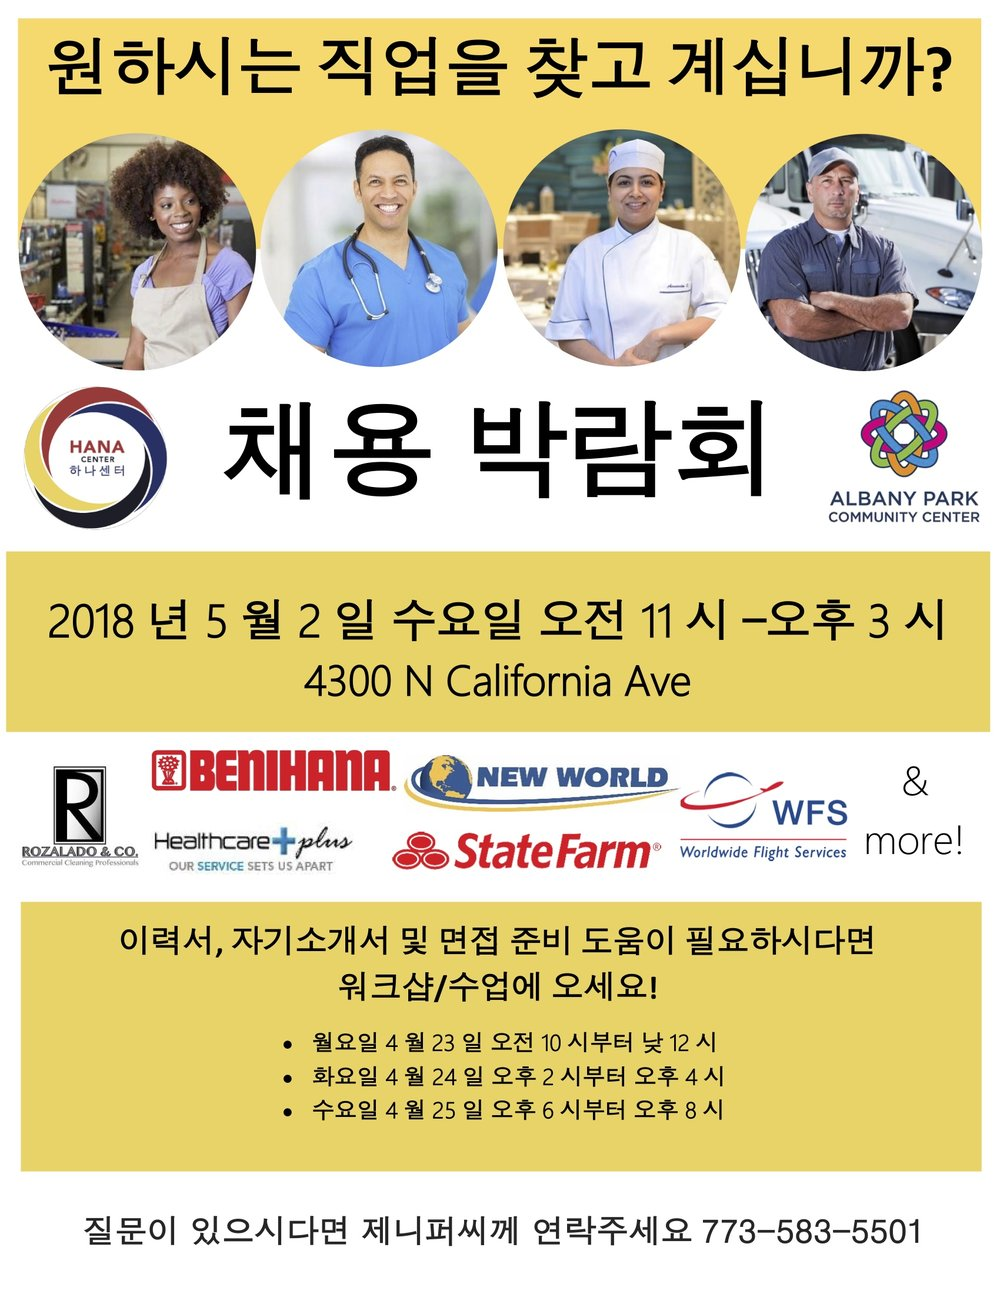 Job Fair Flyer - Korean Version 2018.jpg